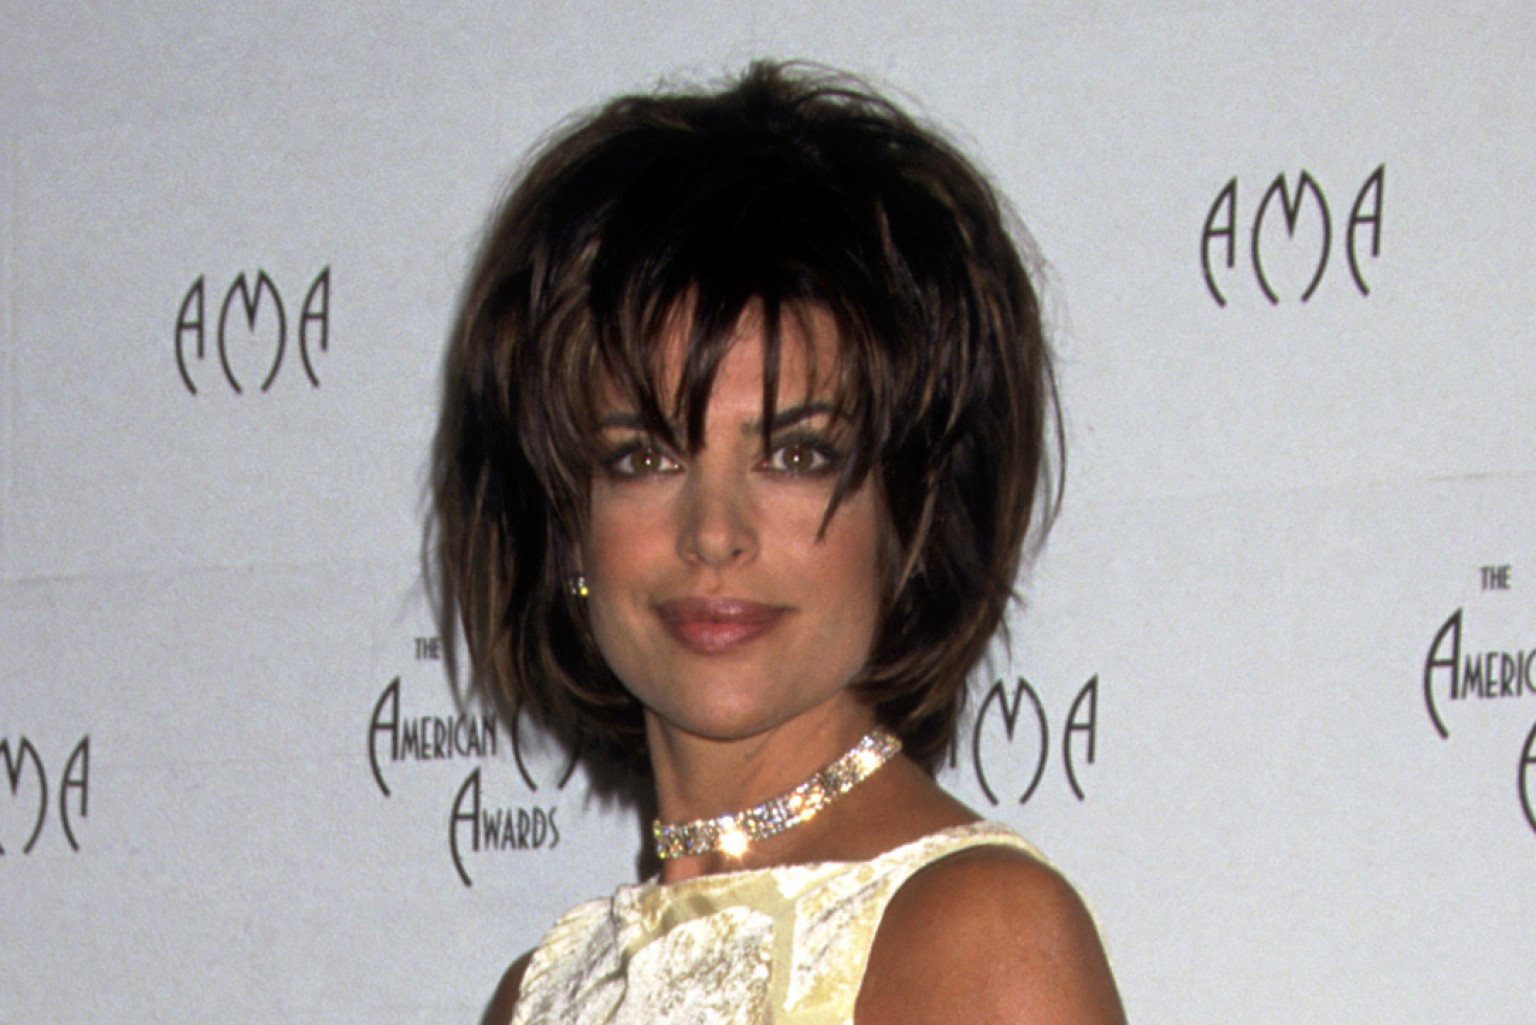 lisa rinna 2009lisa rinna instagram, lisa rinna daughter, lisa rinna hair, lisa rinna 2017, lisa rinna 2016, lisa rinna hairstyles, lisa rinna imdb, lisa rinna melrose place, lisa rinna husband, lisa rinna photos, lisa rinna dancing with the stars, lisa rinna author, lisa rinna 2009, lisa rinna insta, lisa rinna biography, lisa rinna zimbio, lisa rinna now, lisa rinna pictures, lisa rinna haircut, lisa rinna net worth